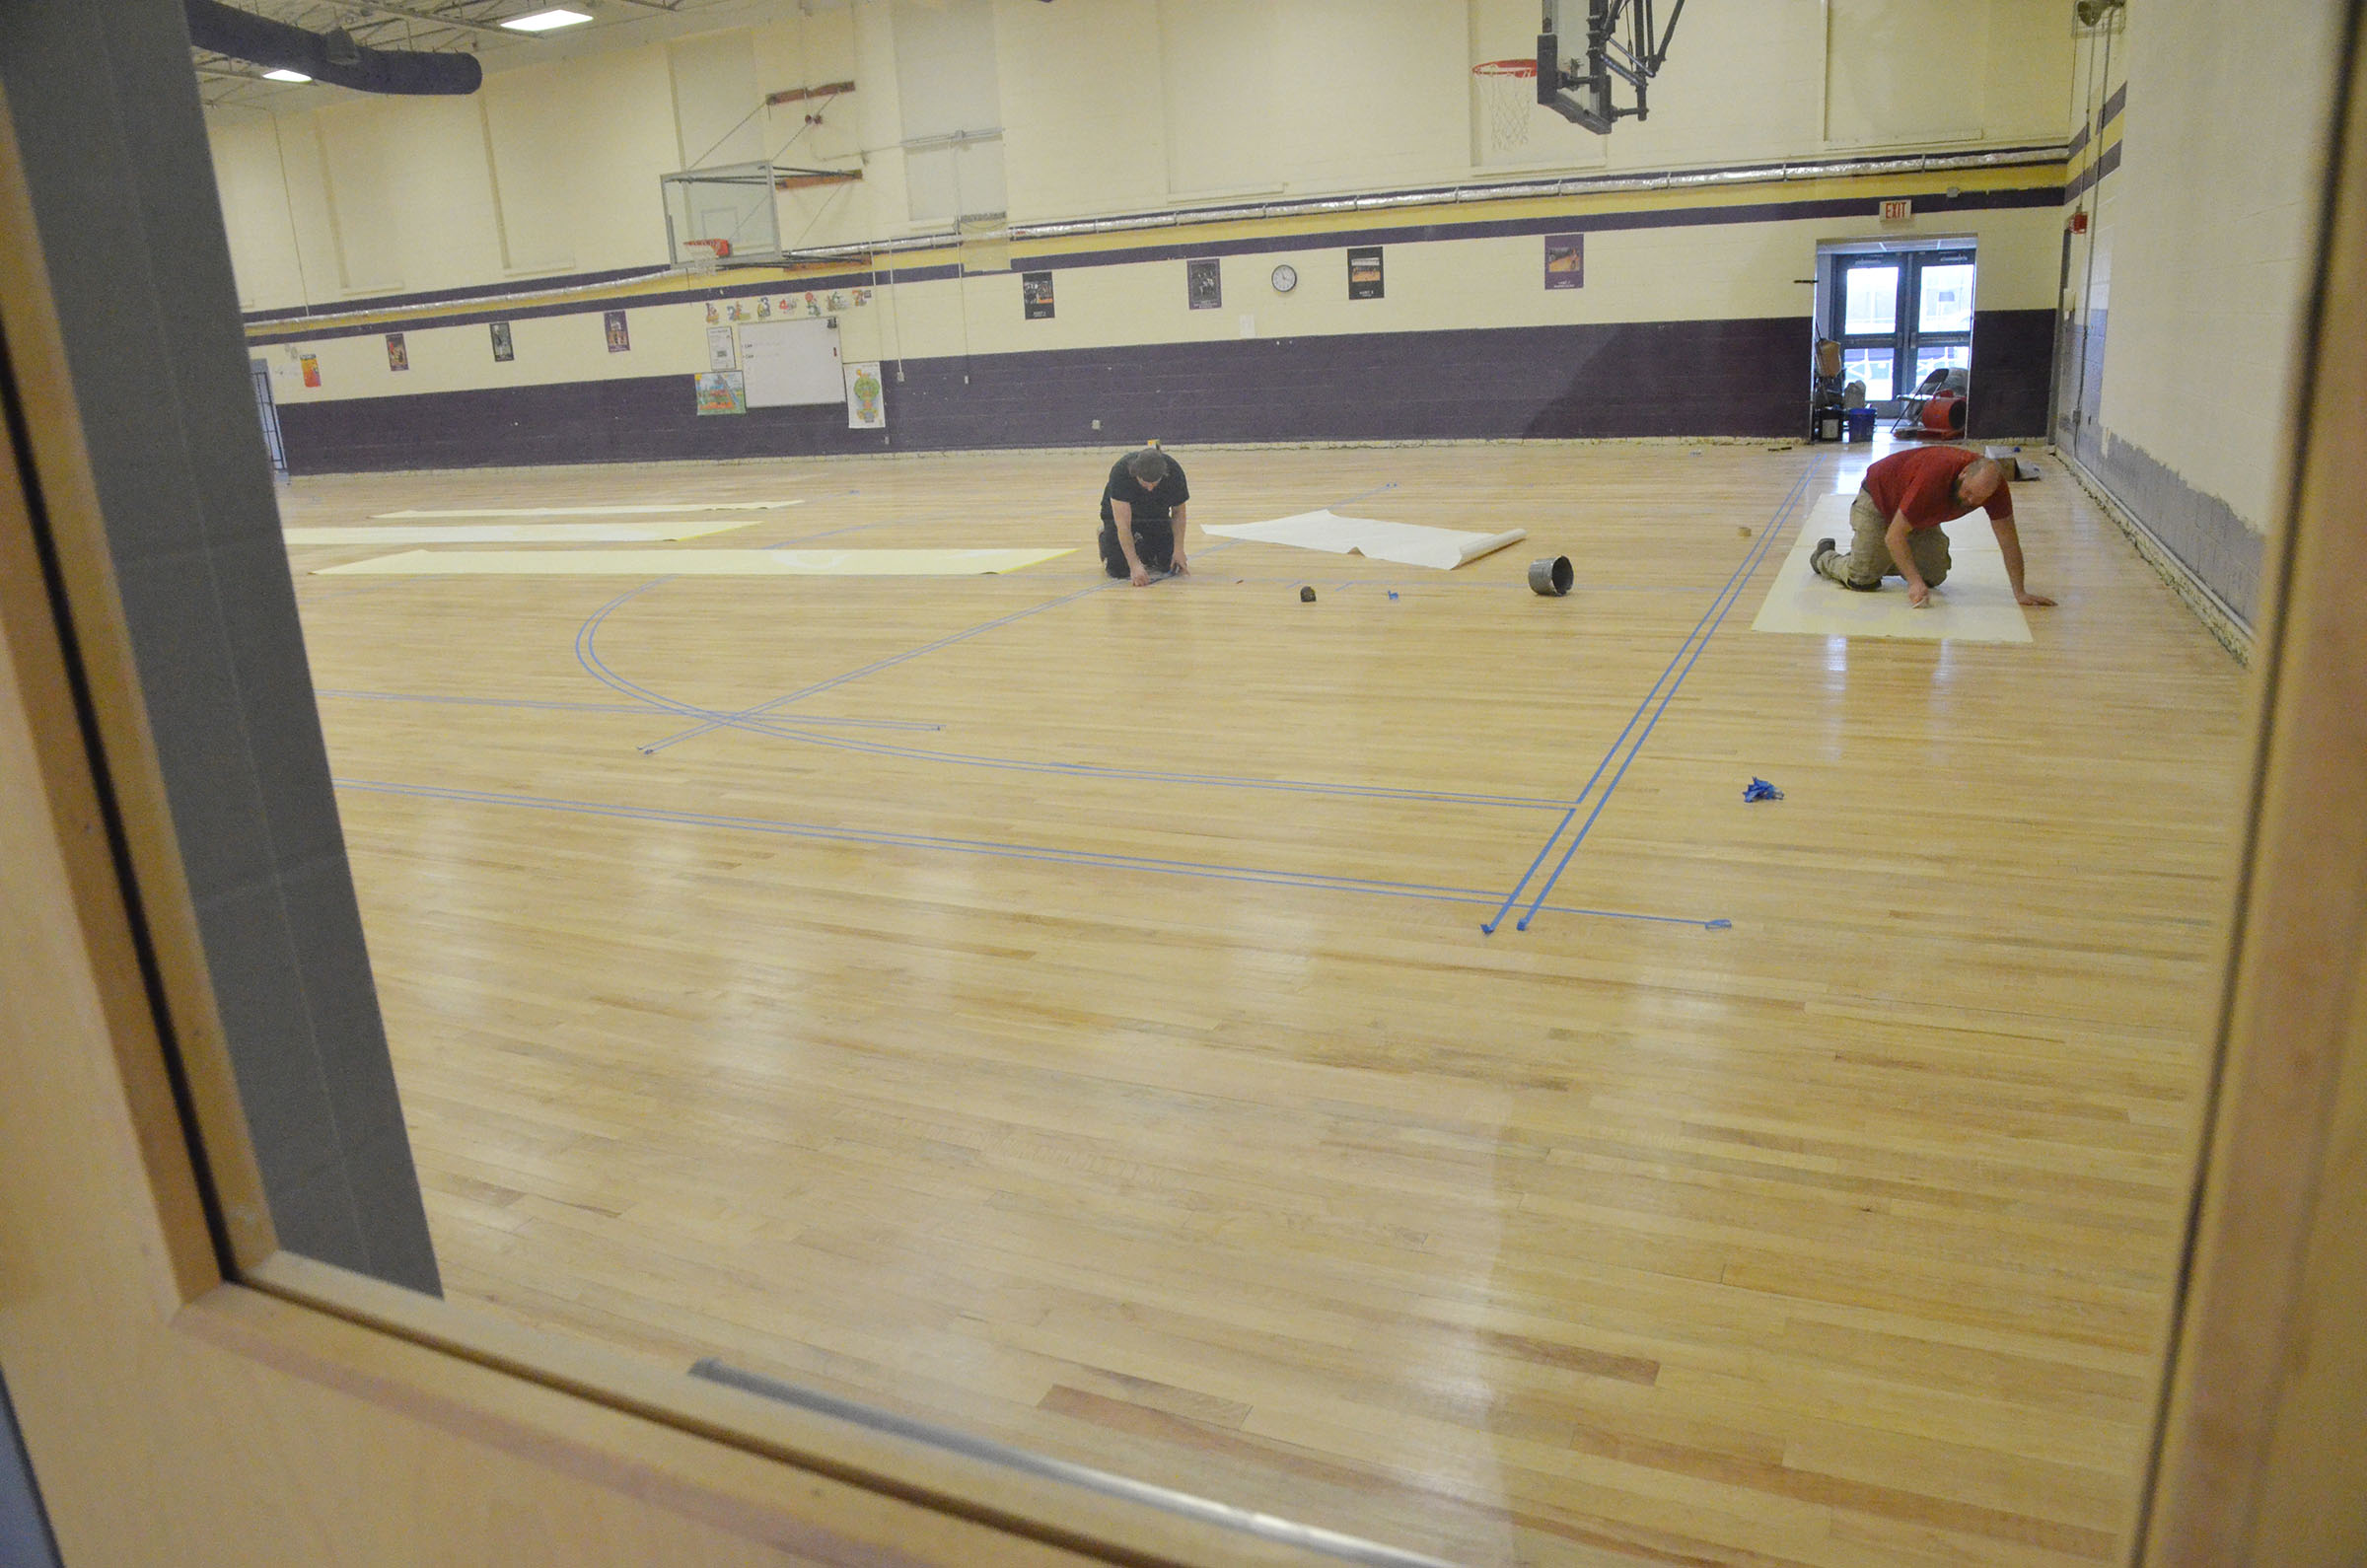 Progress is being made on the renovation of the CES gym floor.